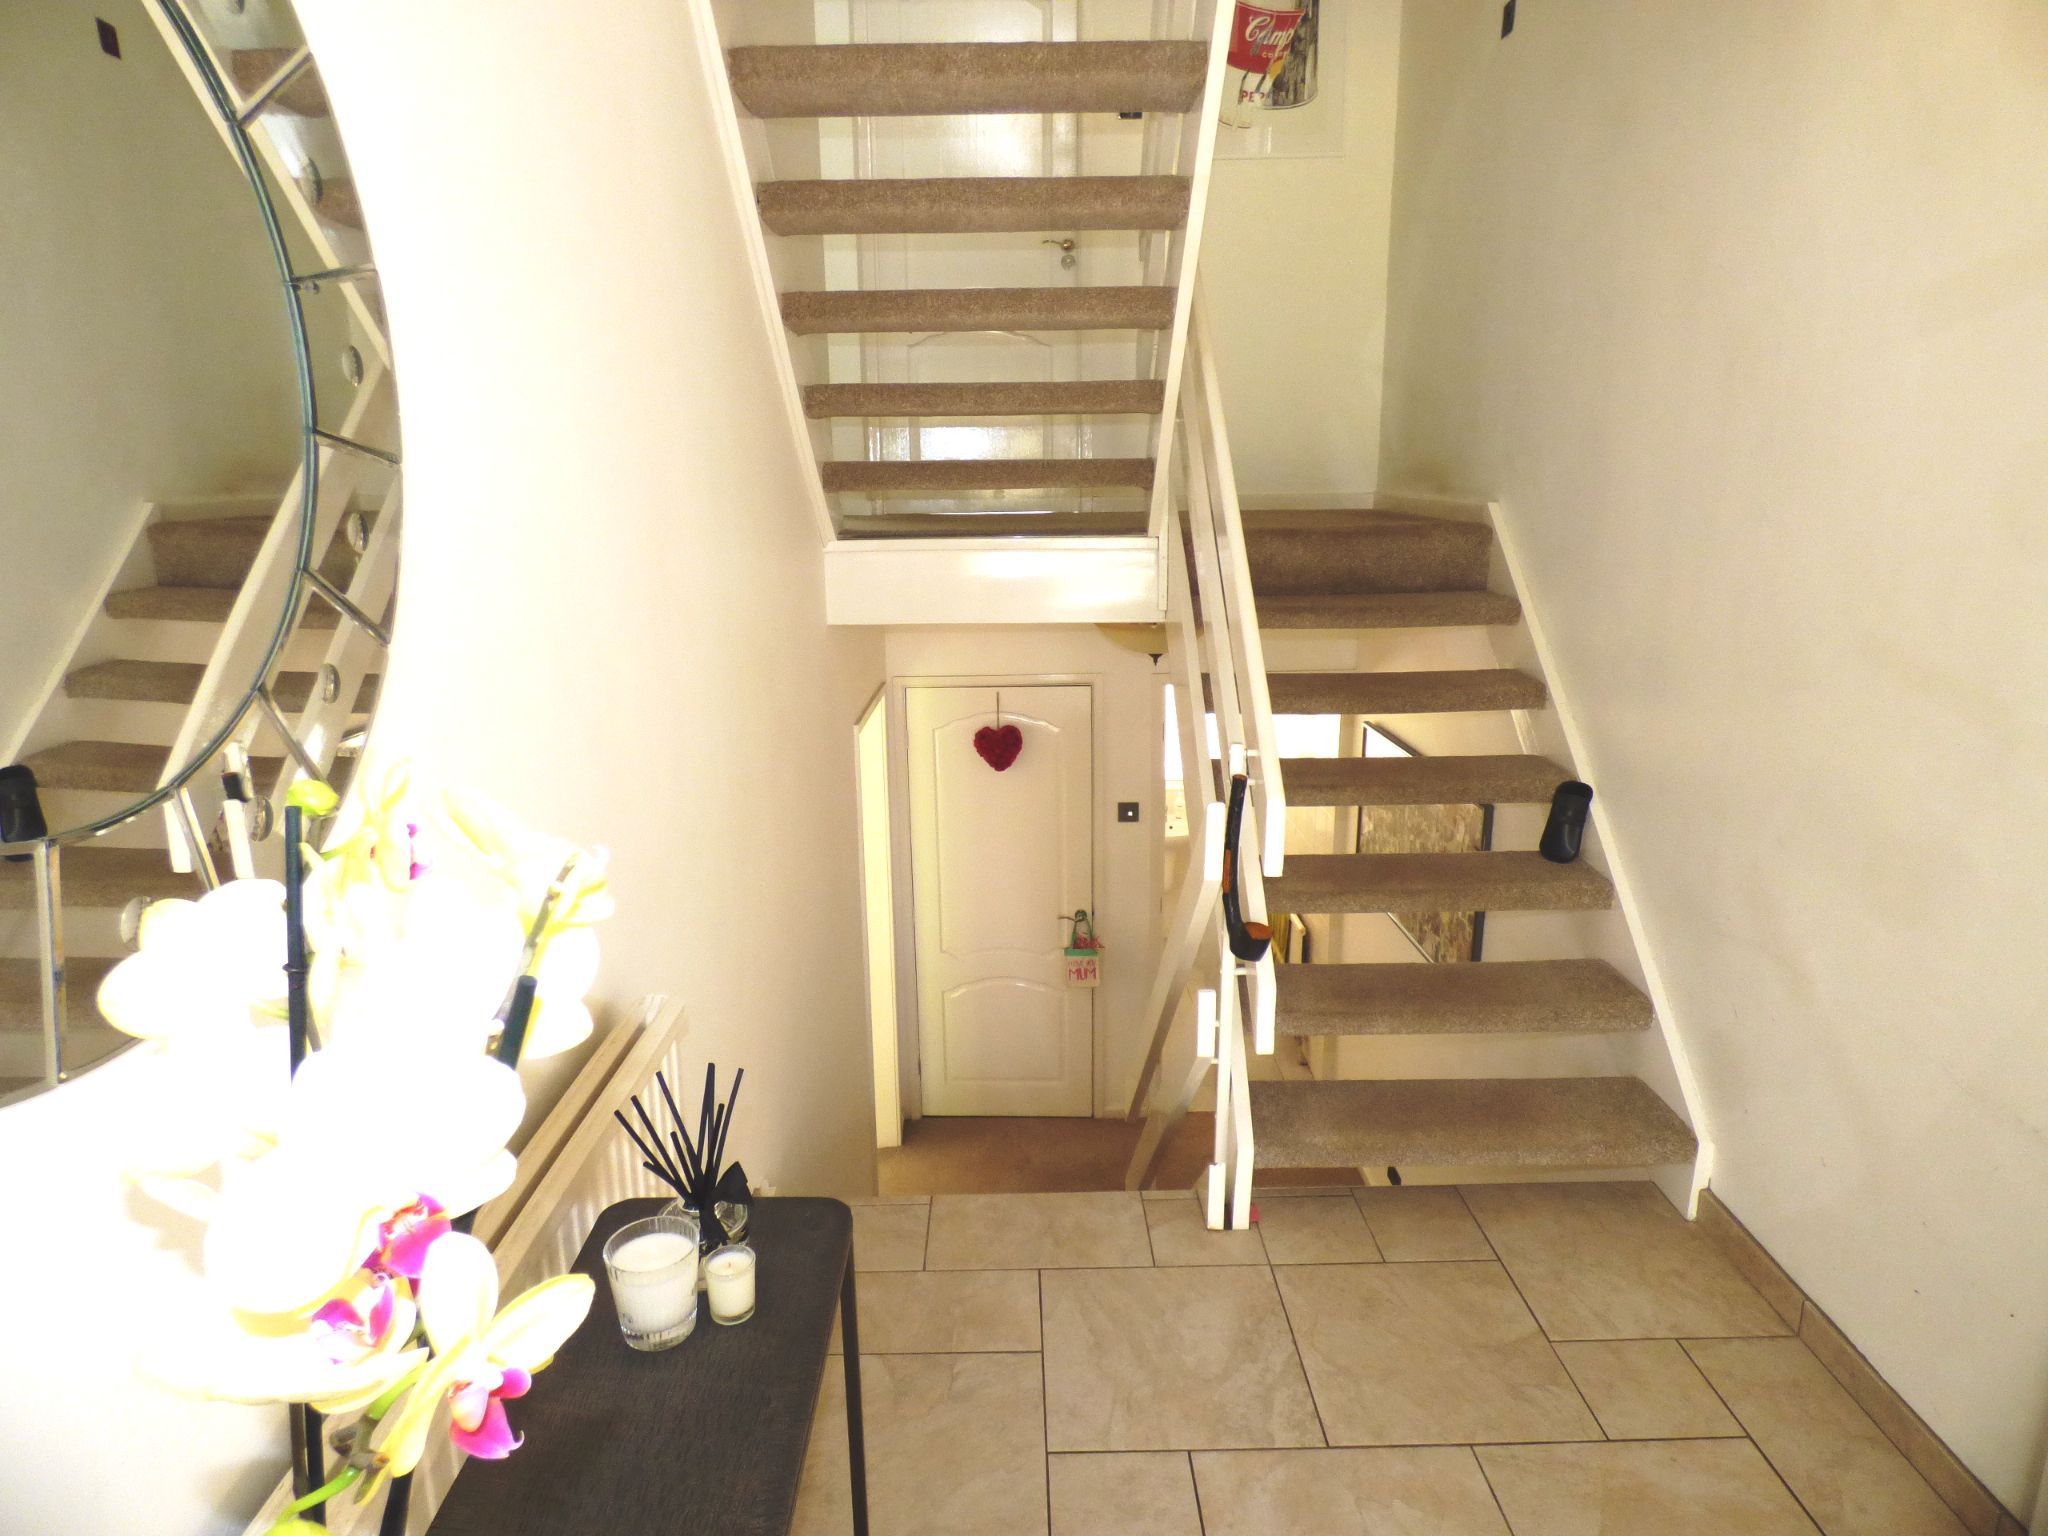 5 Bedroom Detached House For Sale - Hallway